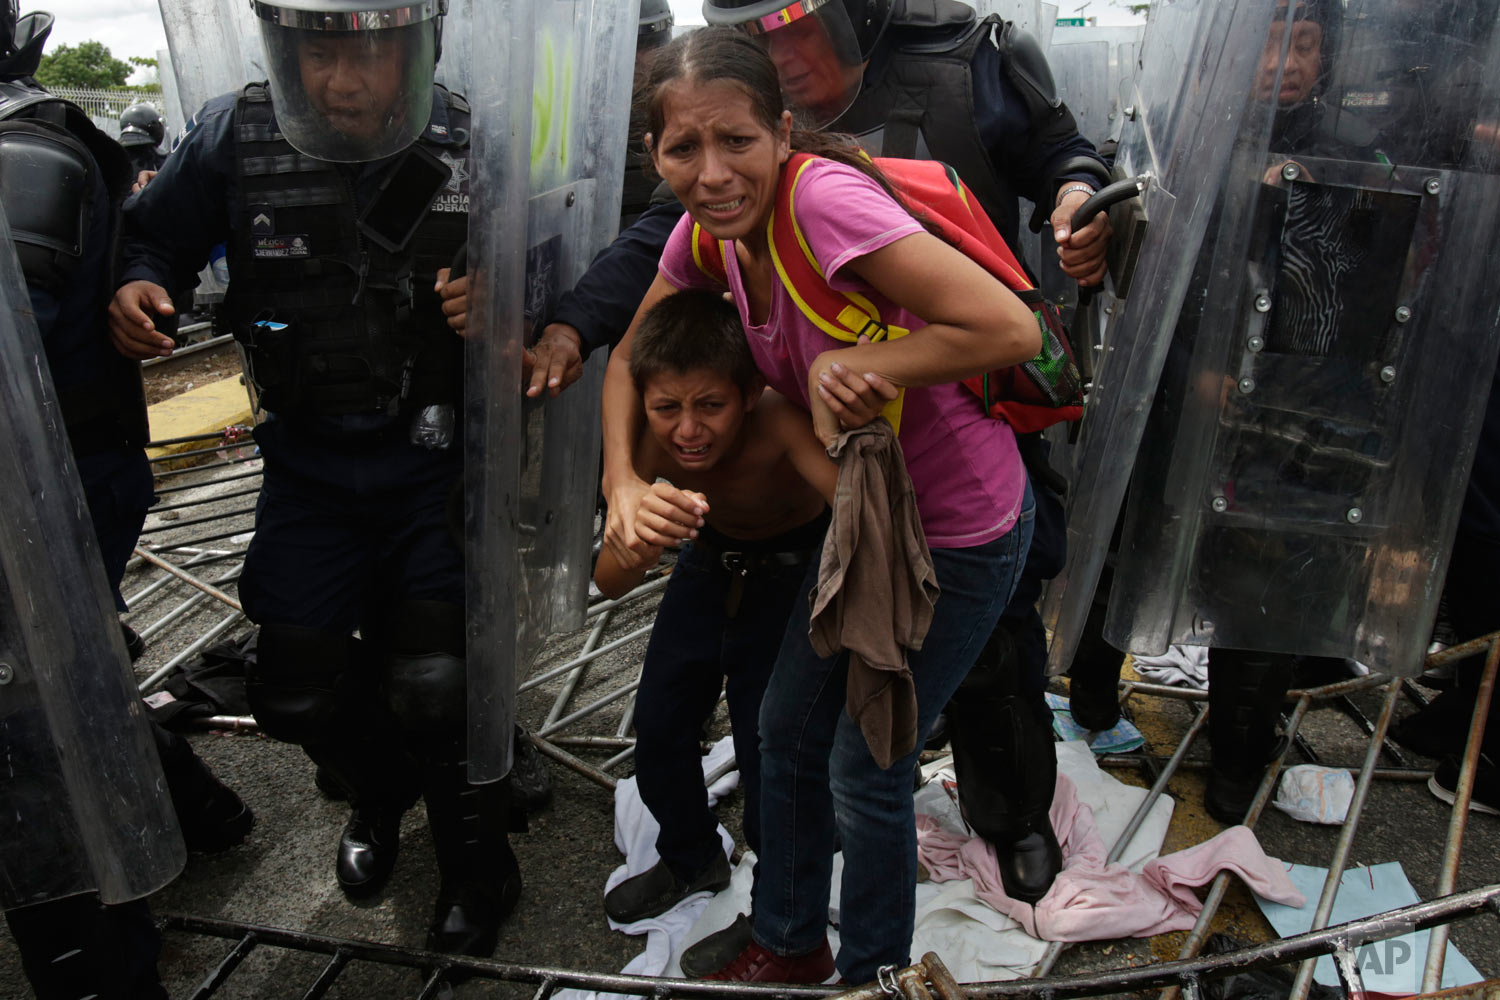 In this Oct. 19, 2018 photo, a Honduran migrant mother and child are shielded by Mexican federal police from stones thrown by unidentified people as a caravan of migrants tries to cross the Guatemalan border to Ciudad Hidalgo, Mexico. The mother and child were unsuccessful in their attempt to cross into Mexico and were returned to the Guatemalan side. (AP Photo/Moises Castillo)